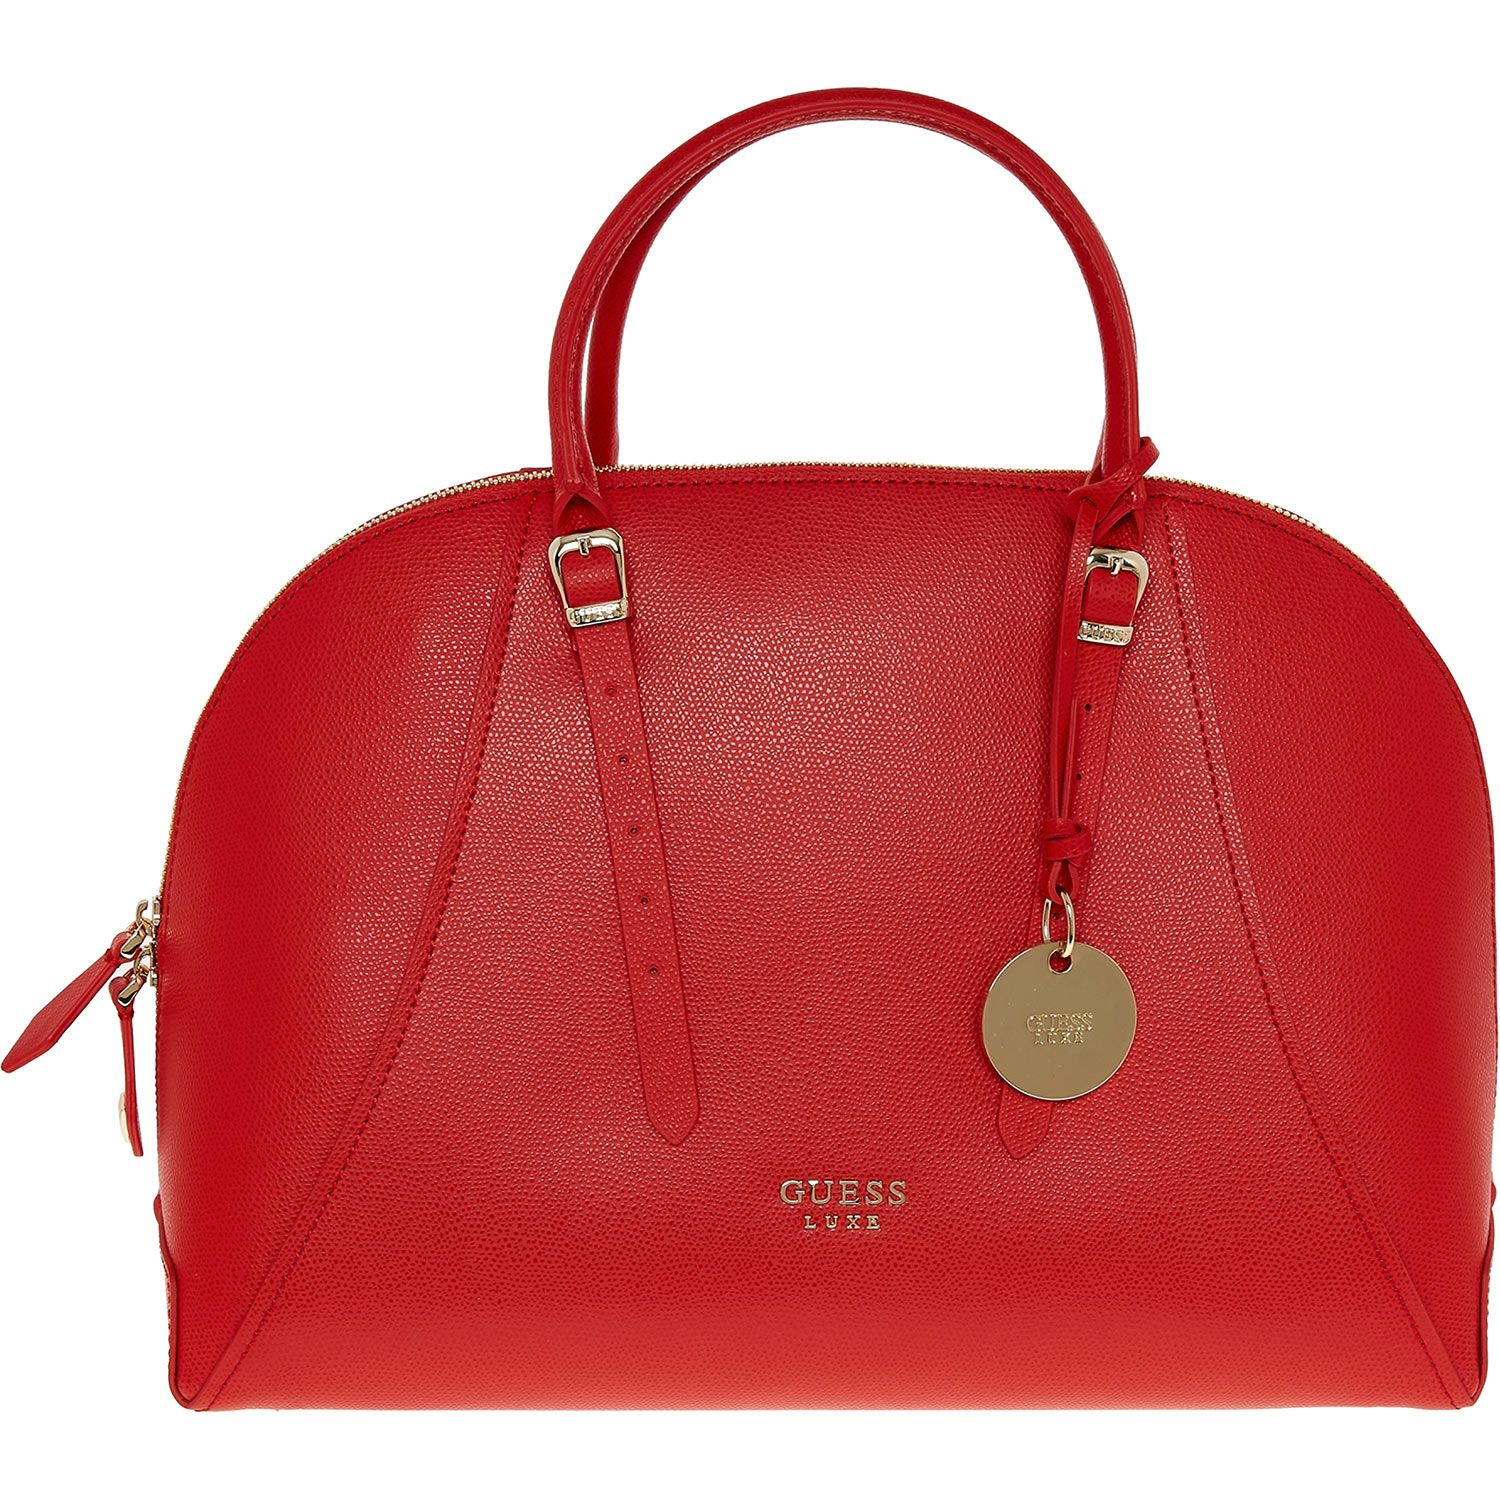 Guess\' Red Leather Tote Bag - TK Maxx |